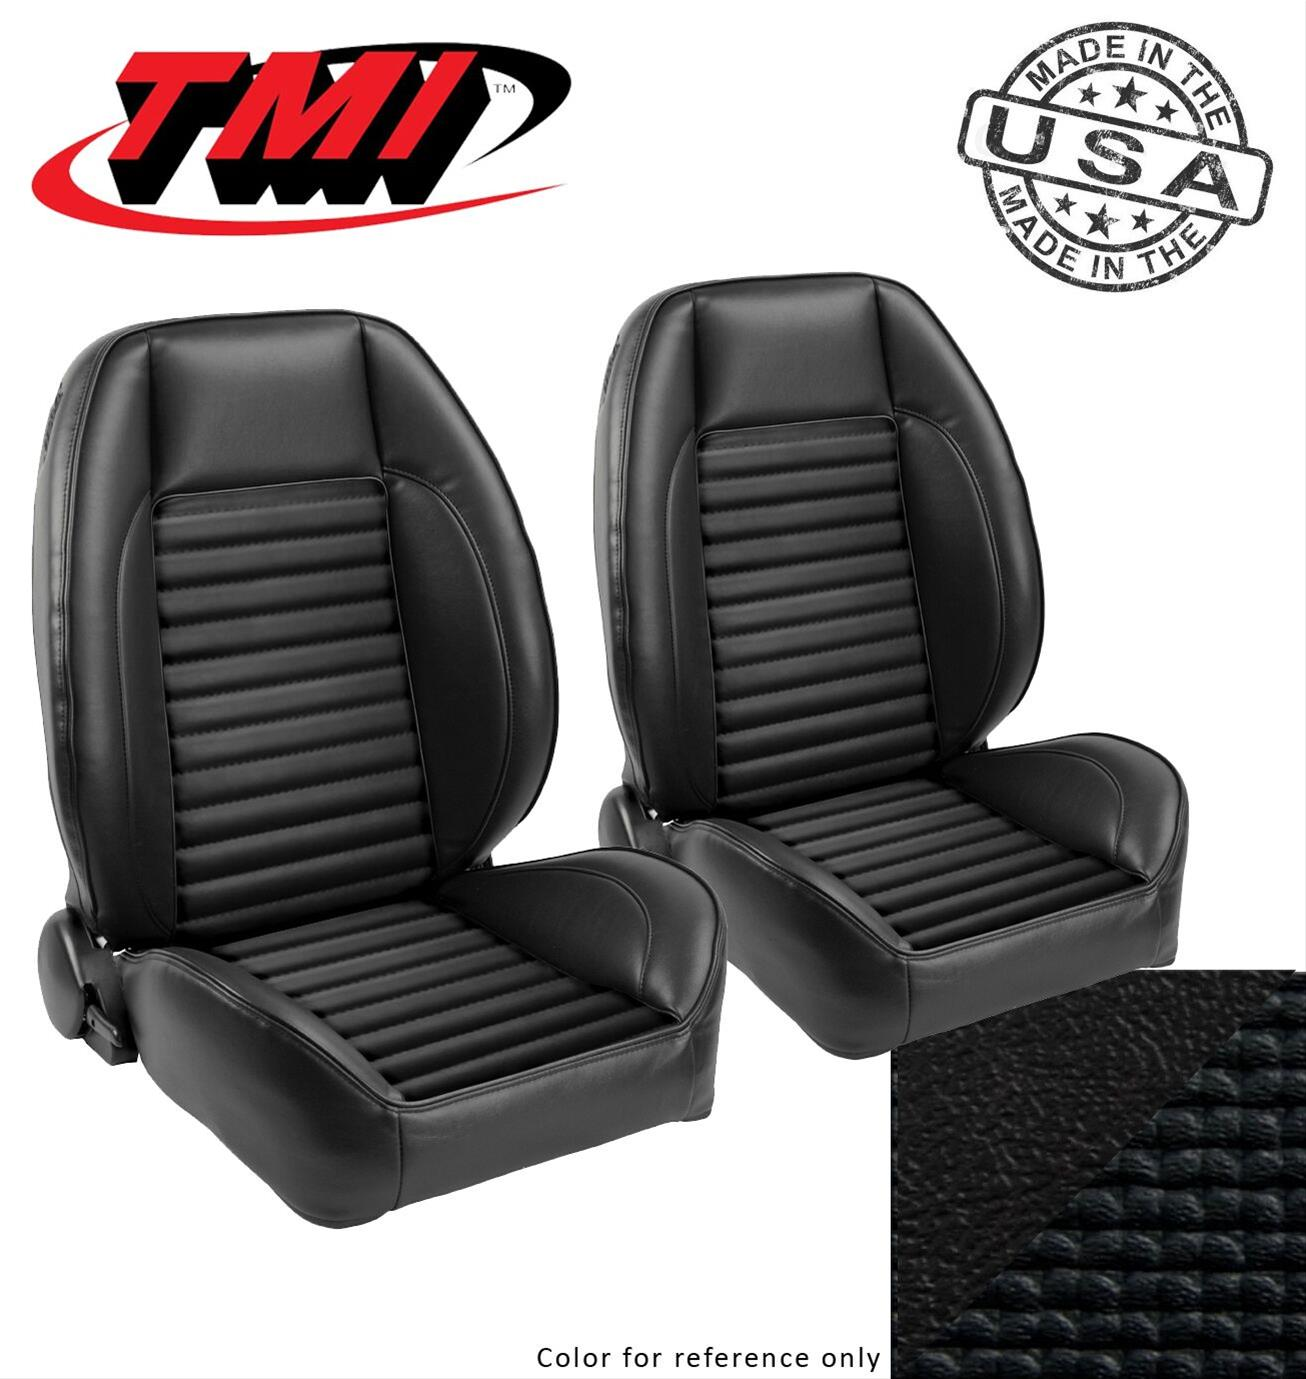 1966 FORD MUSTANG TMI Pro-Series Low Back Seats 47-7001-958-2949